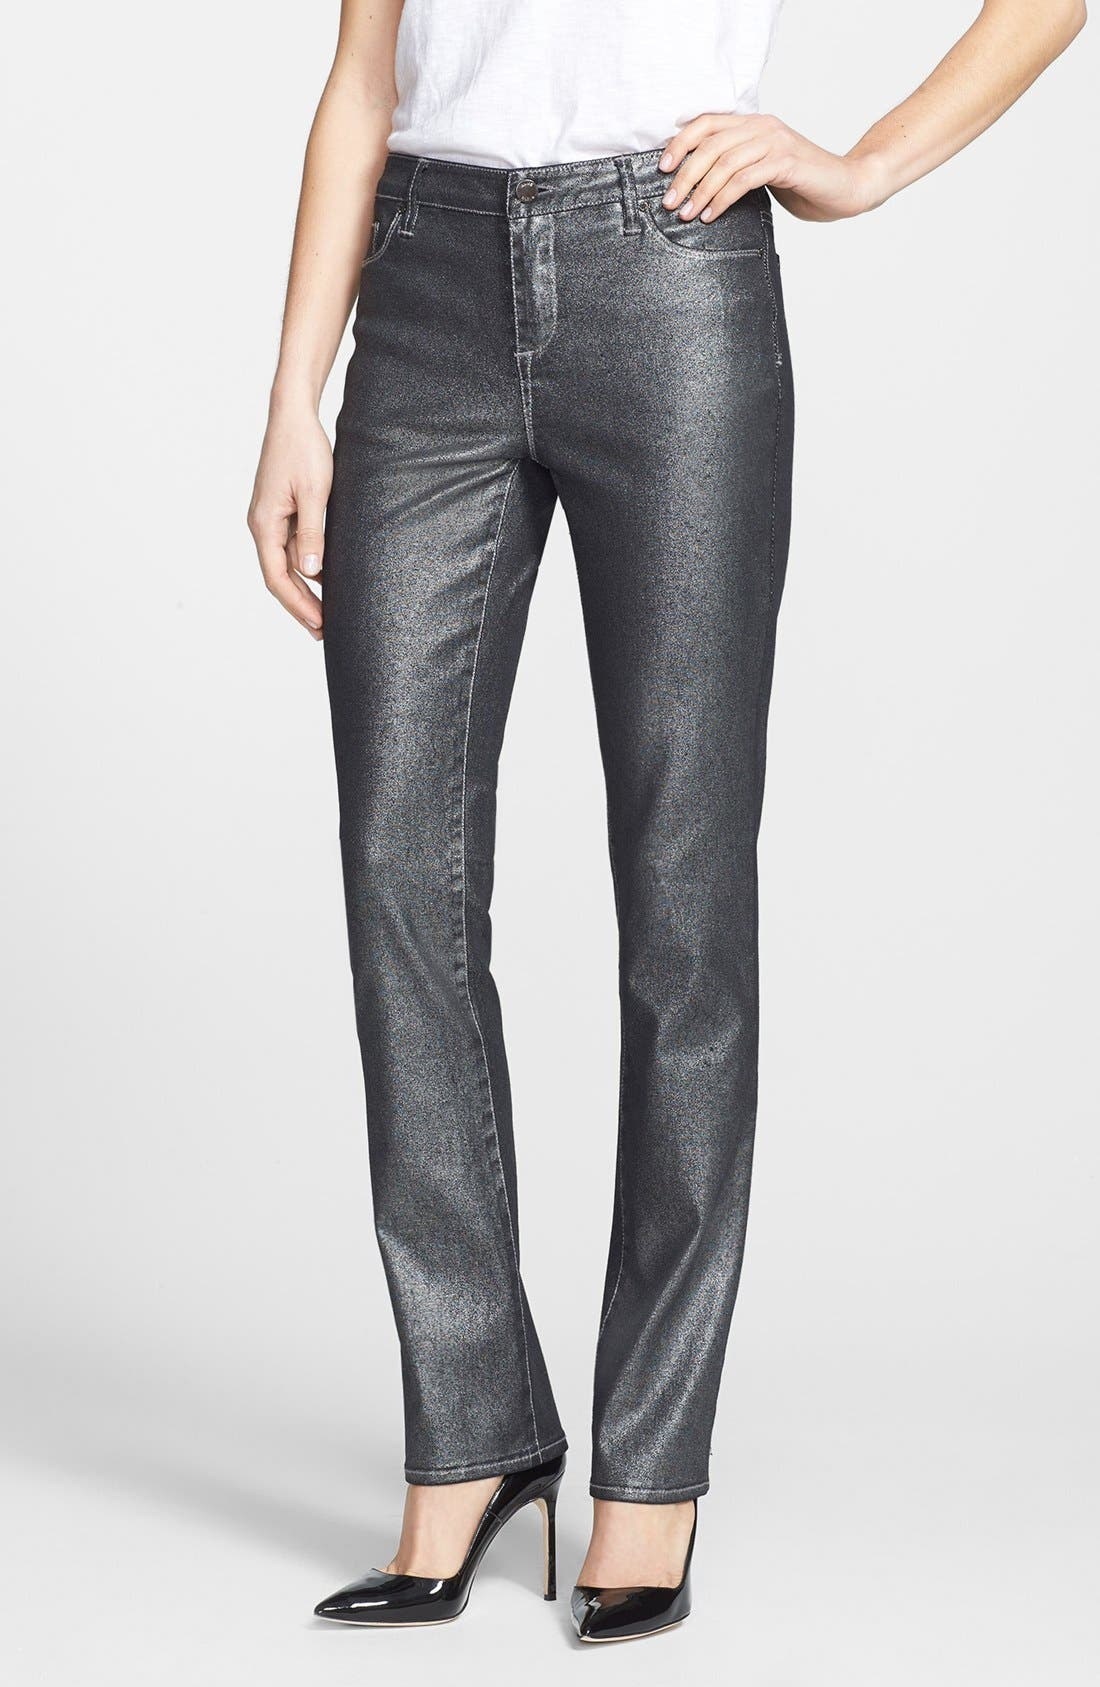 Alternate Image 1 Selected - Anne Klein Metallic Straight Leg Jeans (Petite)